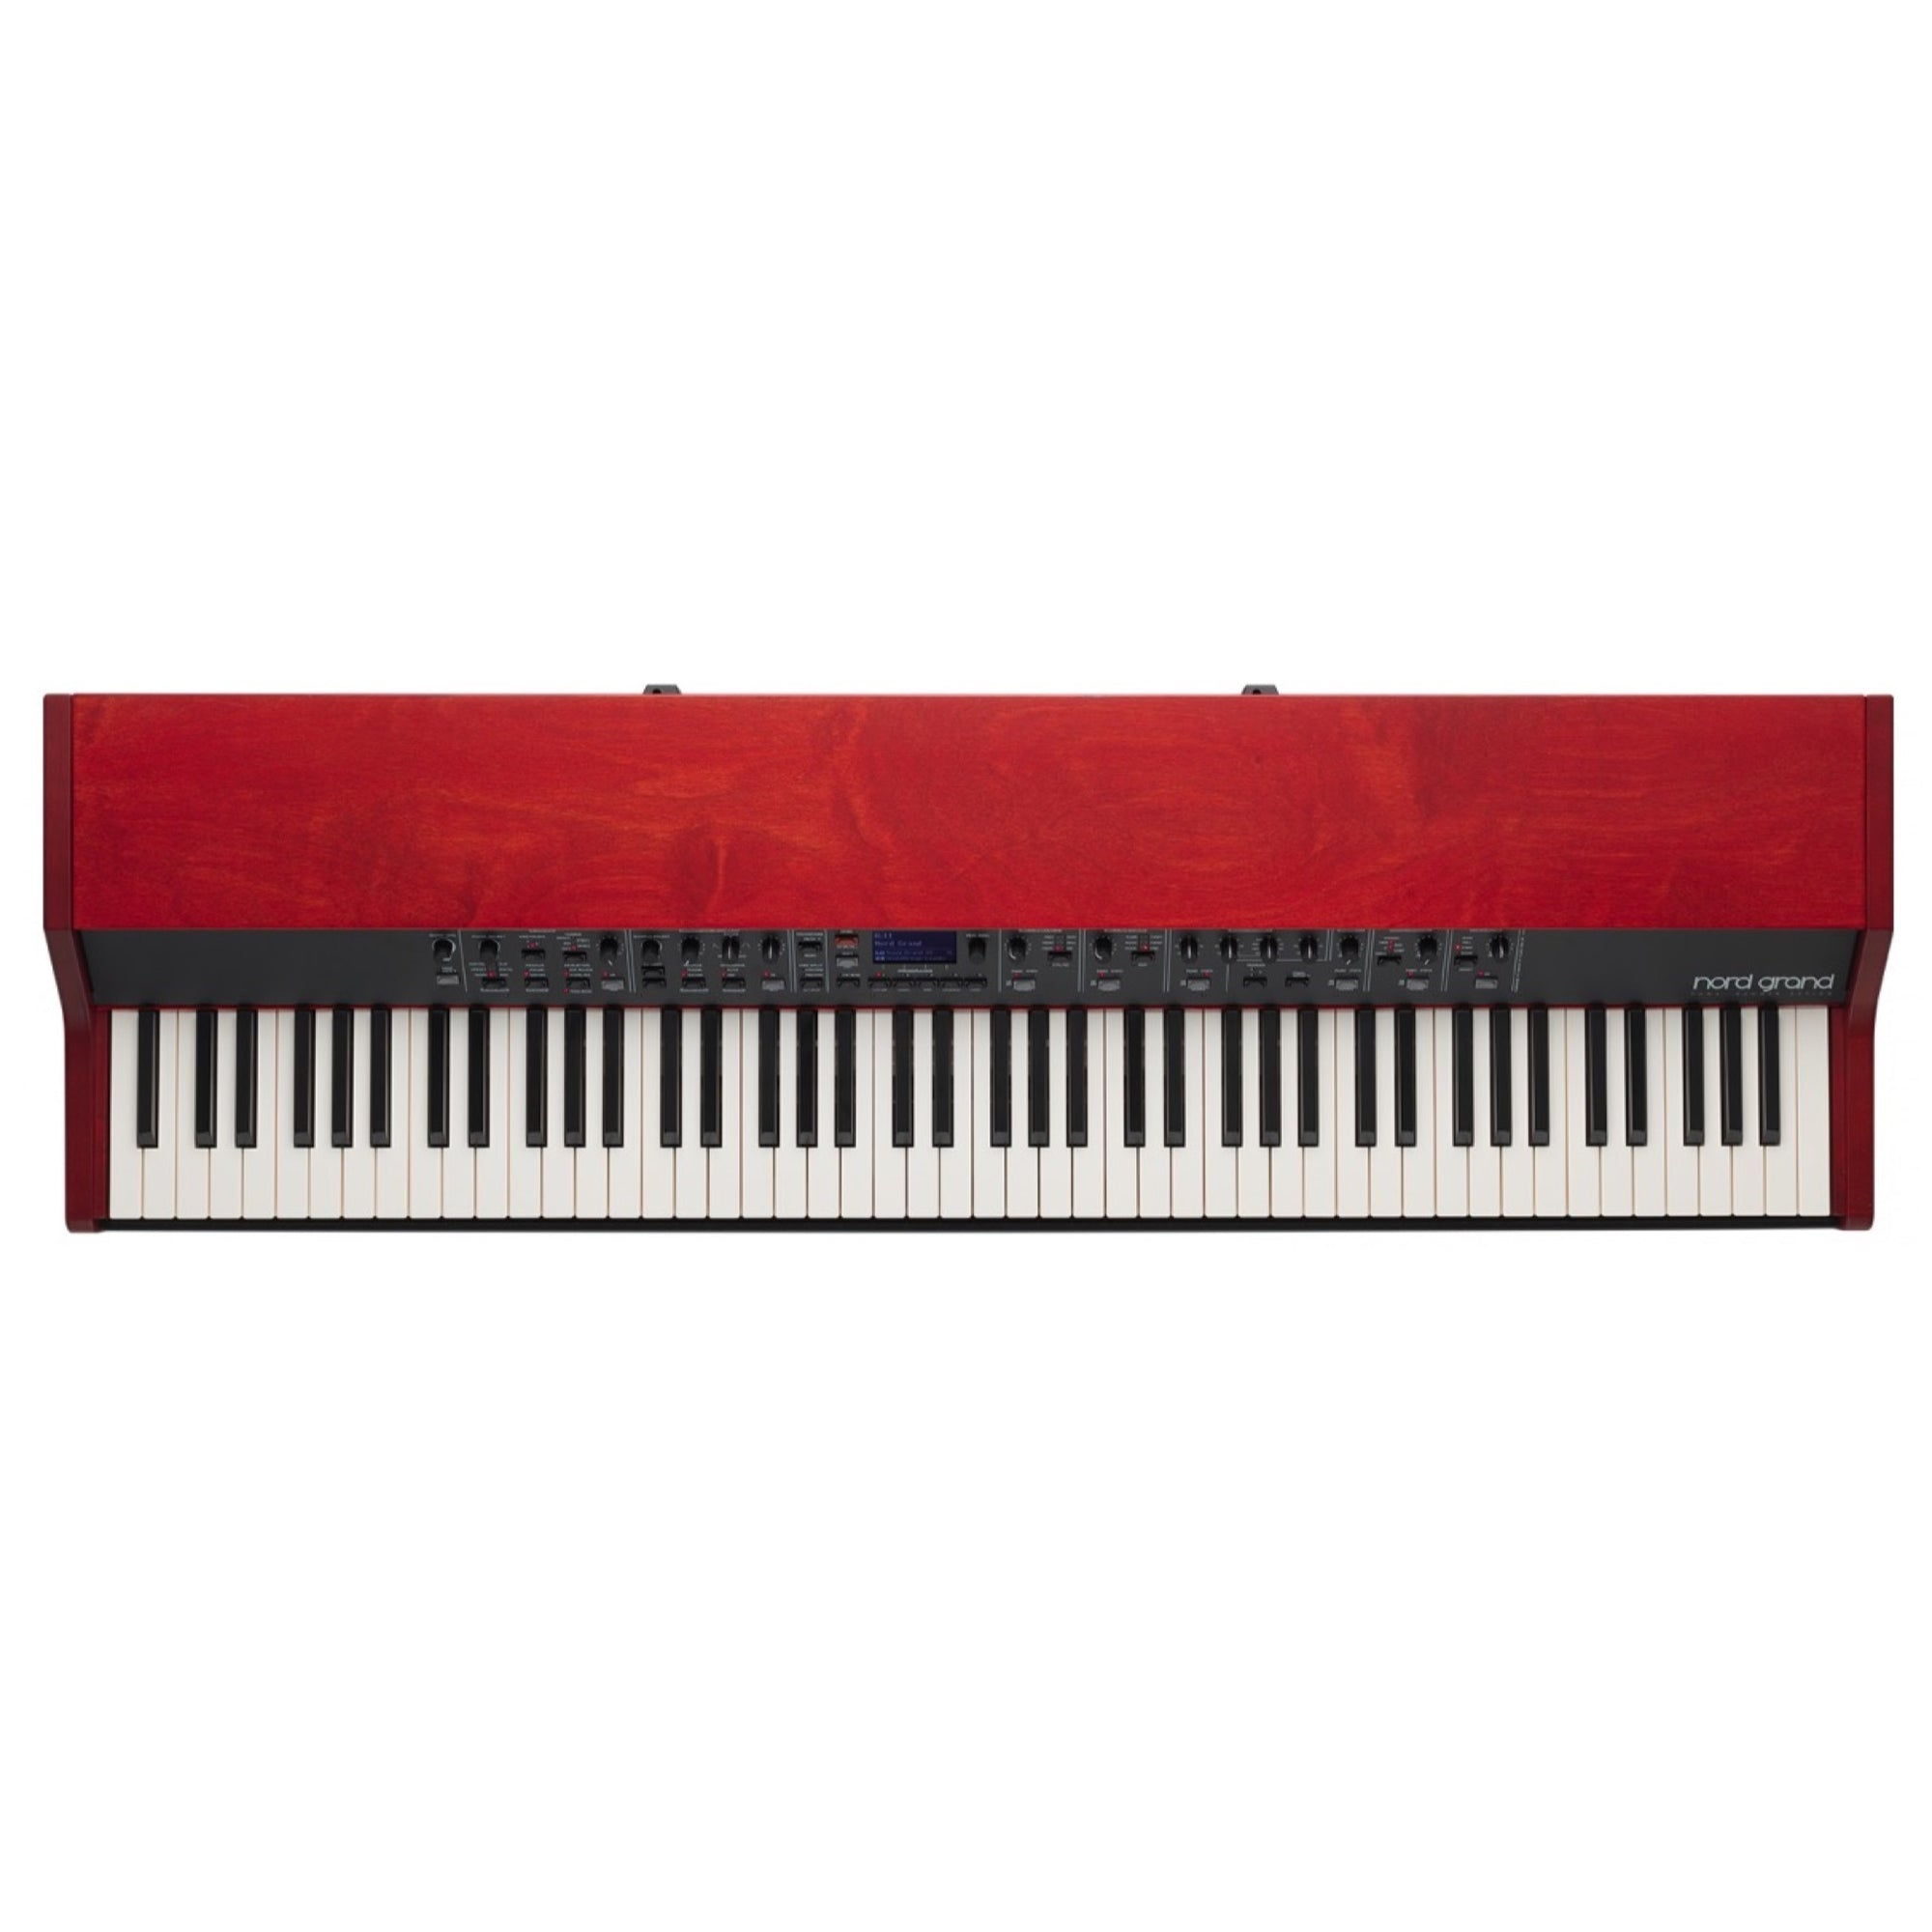 Nord Grand Hammer Action Digital Stage Piano, 88-Key